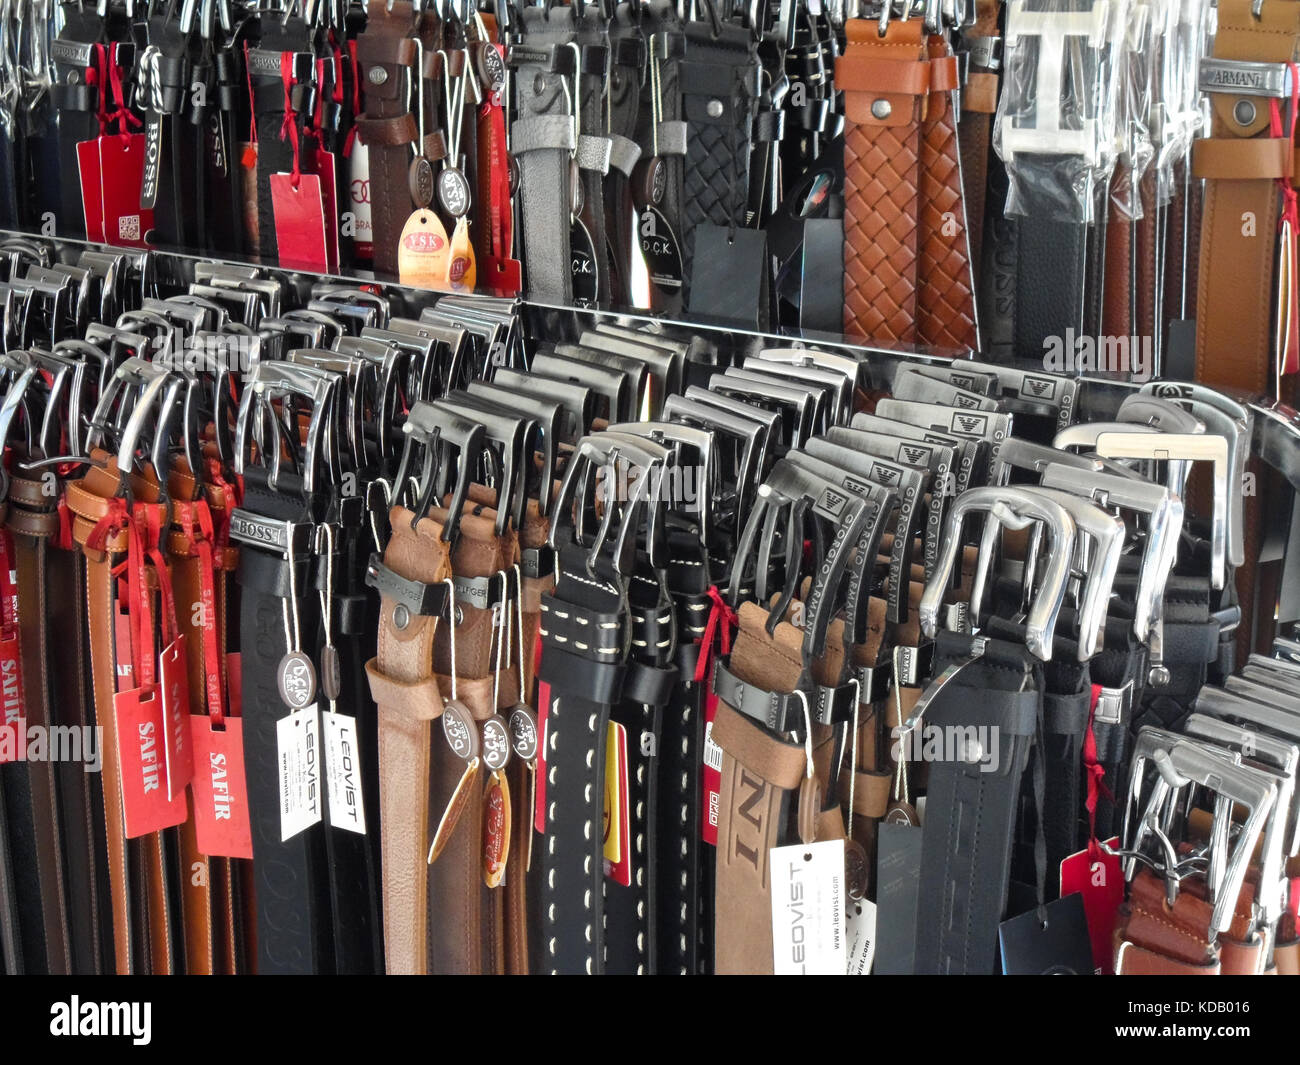 A shop display of mens leather and plastic trouser belts, Icmeler, Turkey, Europe. - Stock Image